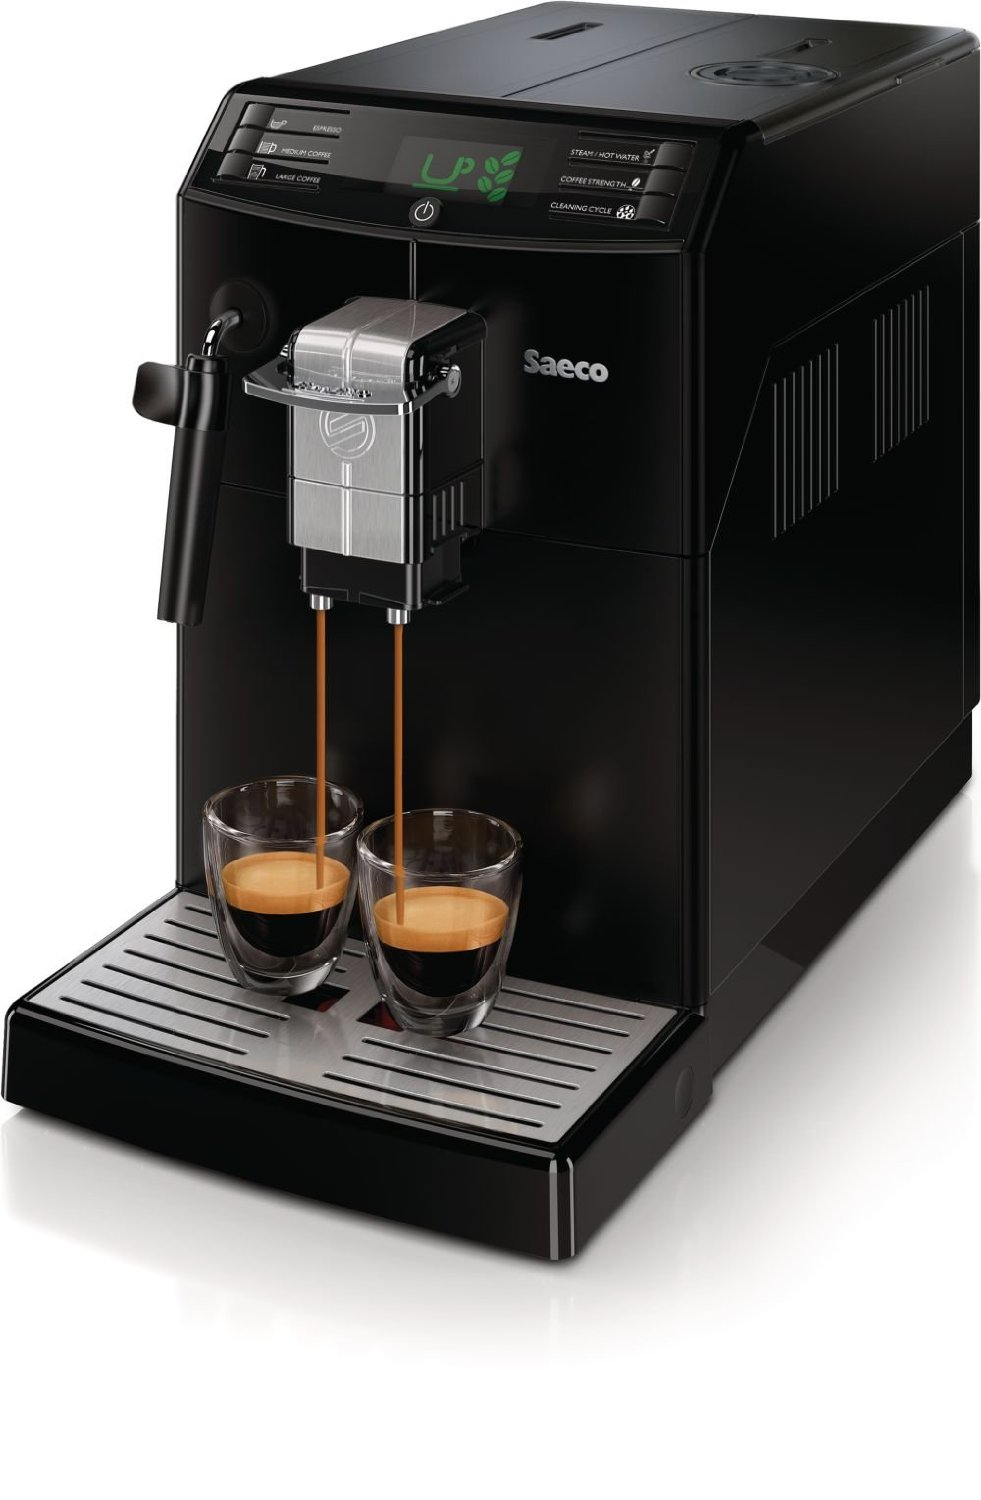 saeco hd877548 philips minuto focus fully automatic espresso machine view on amazon